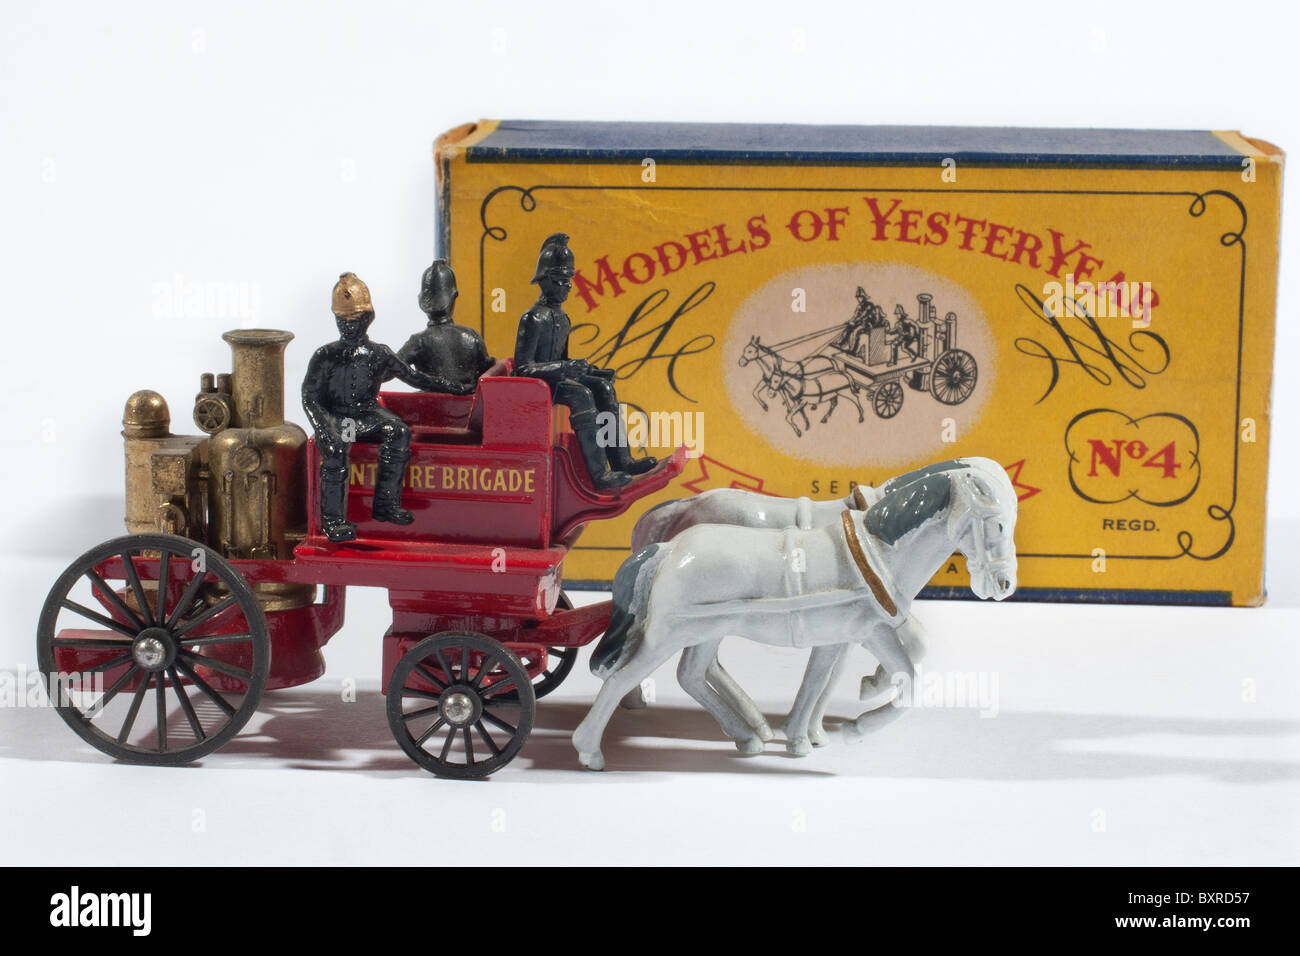 Models of Yesteryear 1905 Shand Mason Horse Drawn Fire Engine Issued by Lesney 1960 - Stock Image